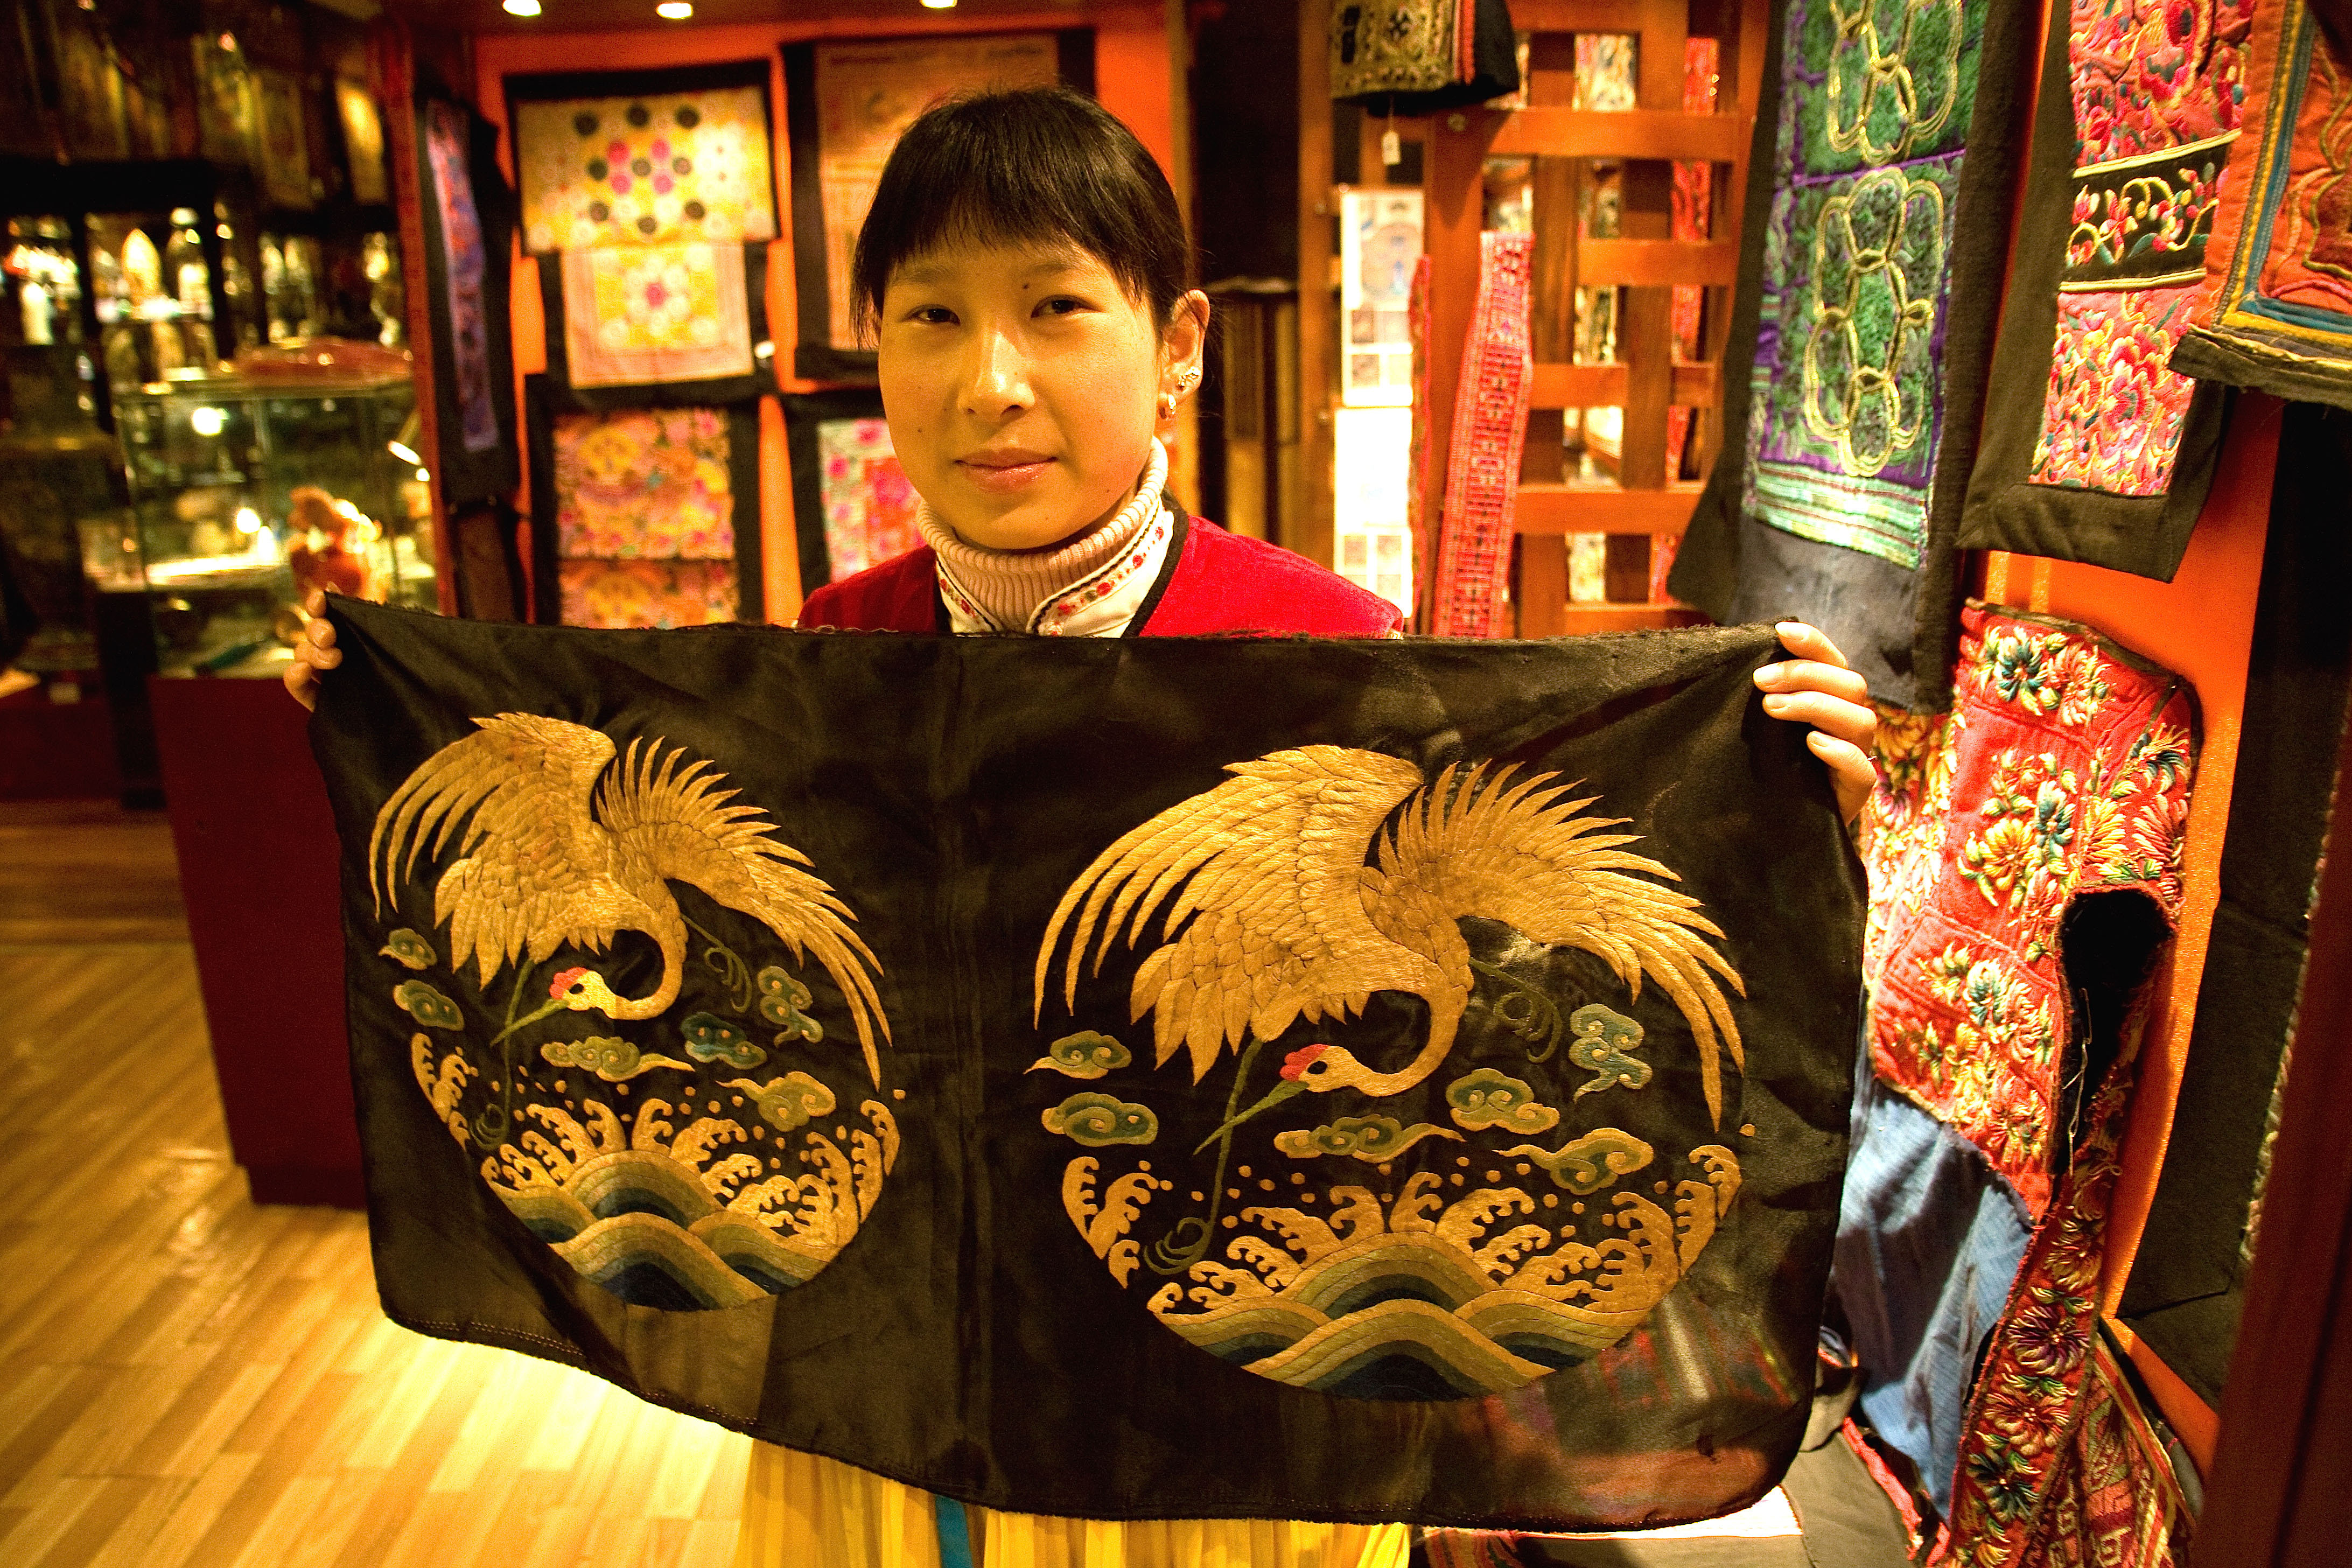 Naxi-style embroidery at Lijiang museum